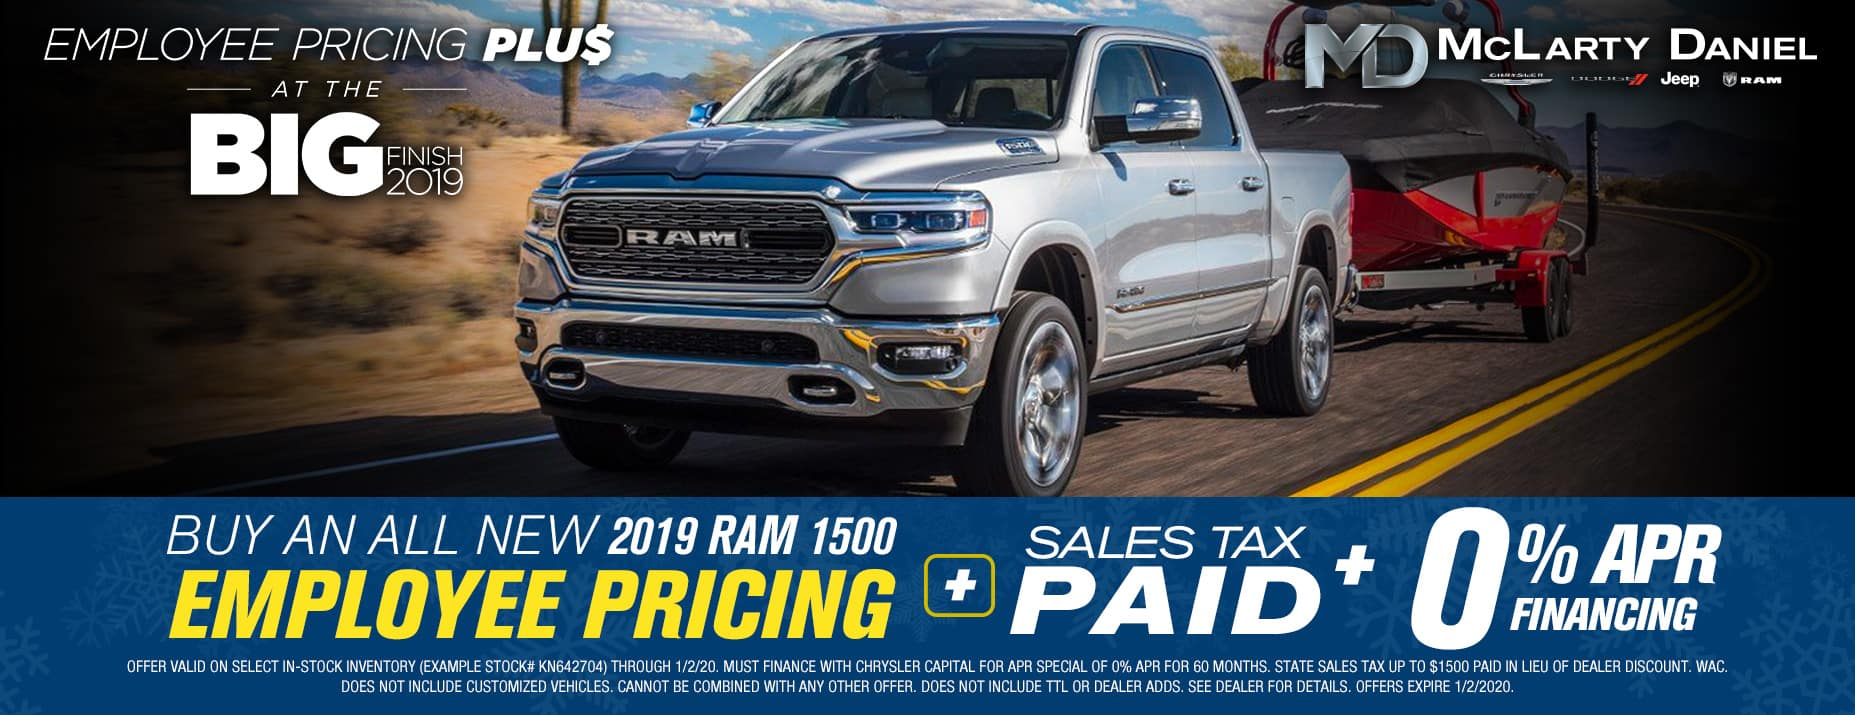 BUY AN ALL NEW 2019 RAM 1500 FOR EMPLOYEE PRICING -PLUS- 0% APR -PLUS- SALES TAX PAID!